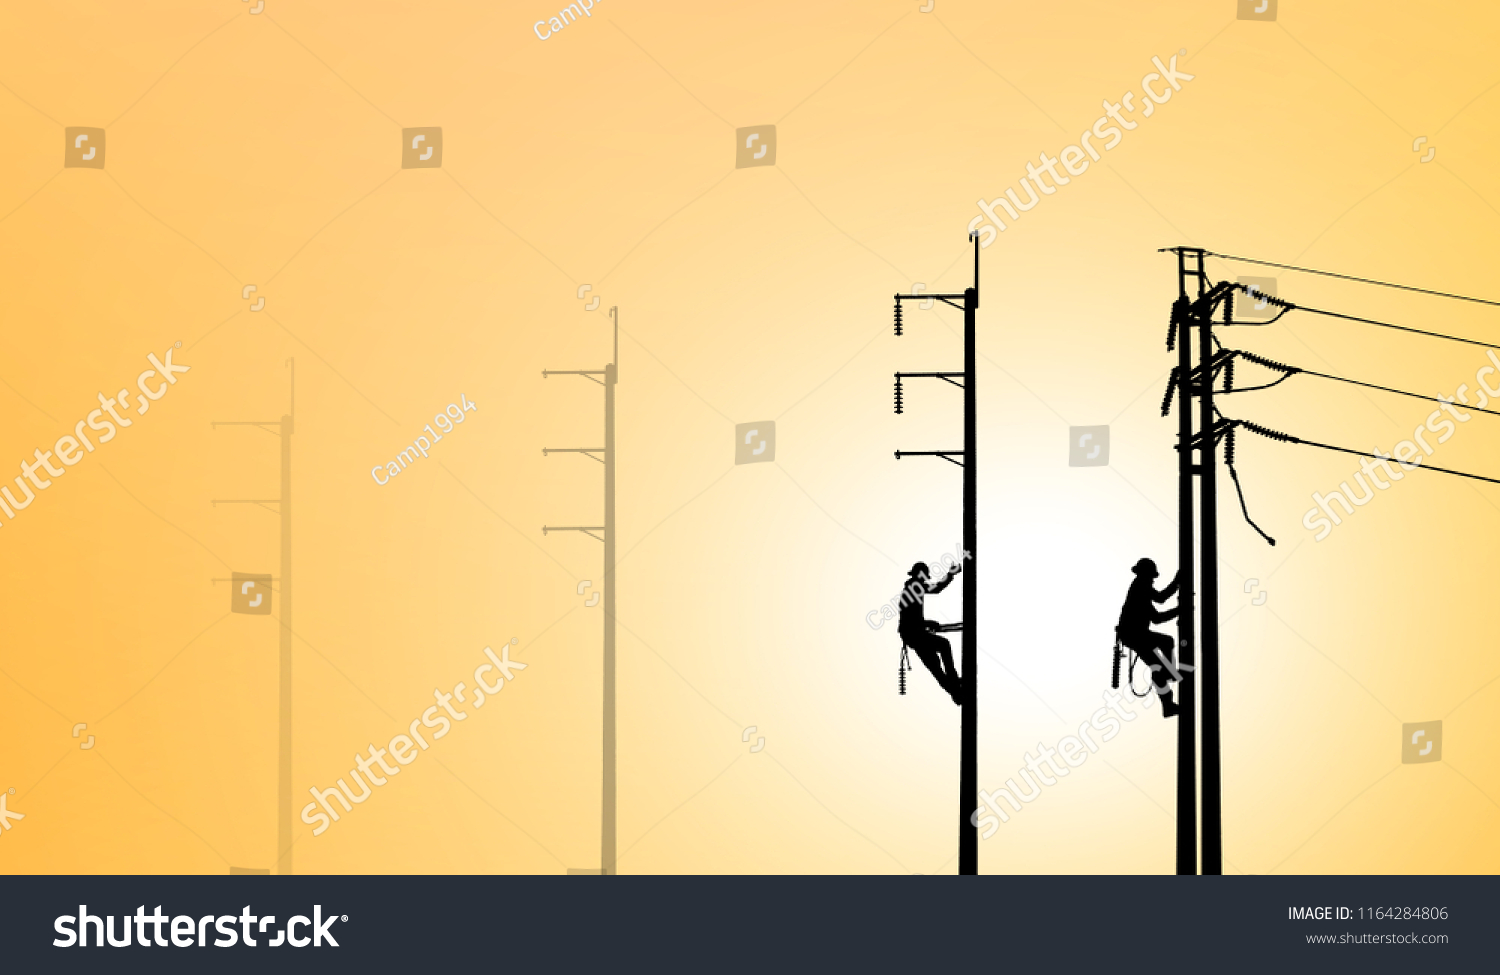 hight resolution of silhouette electrical engineers working on electricity pylon high tension power line repairs and maintenance on blurry